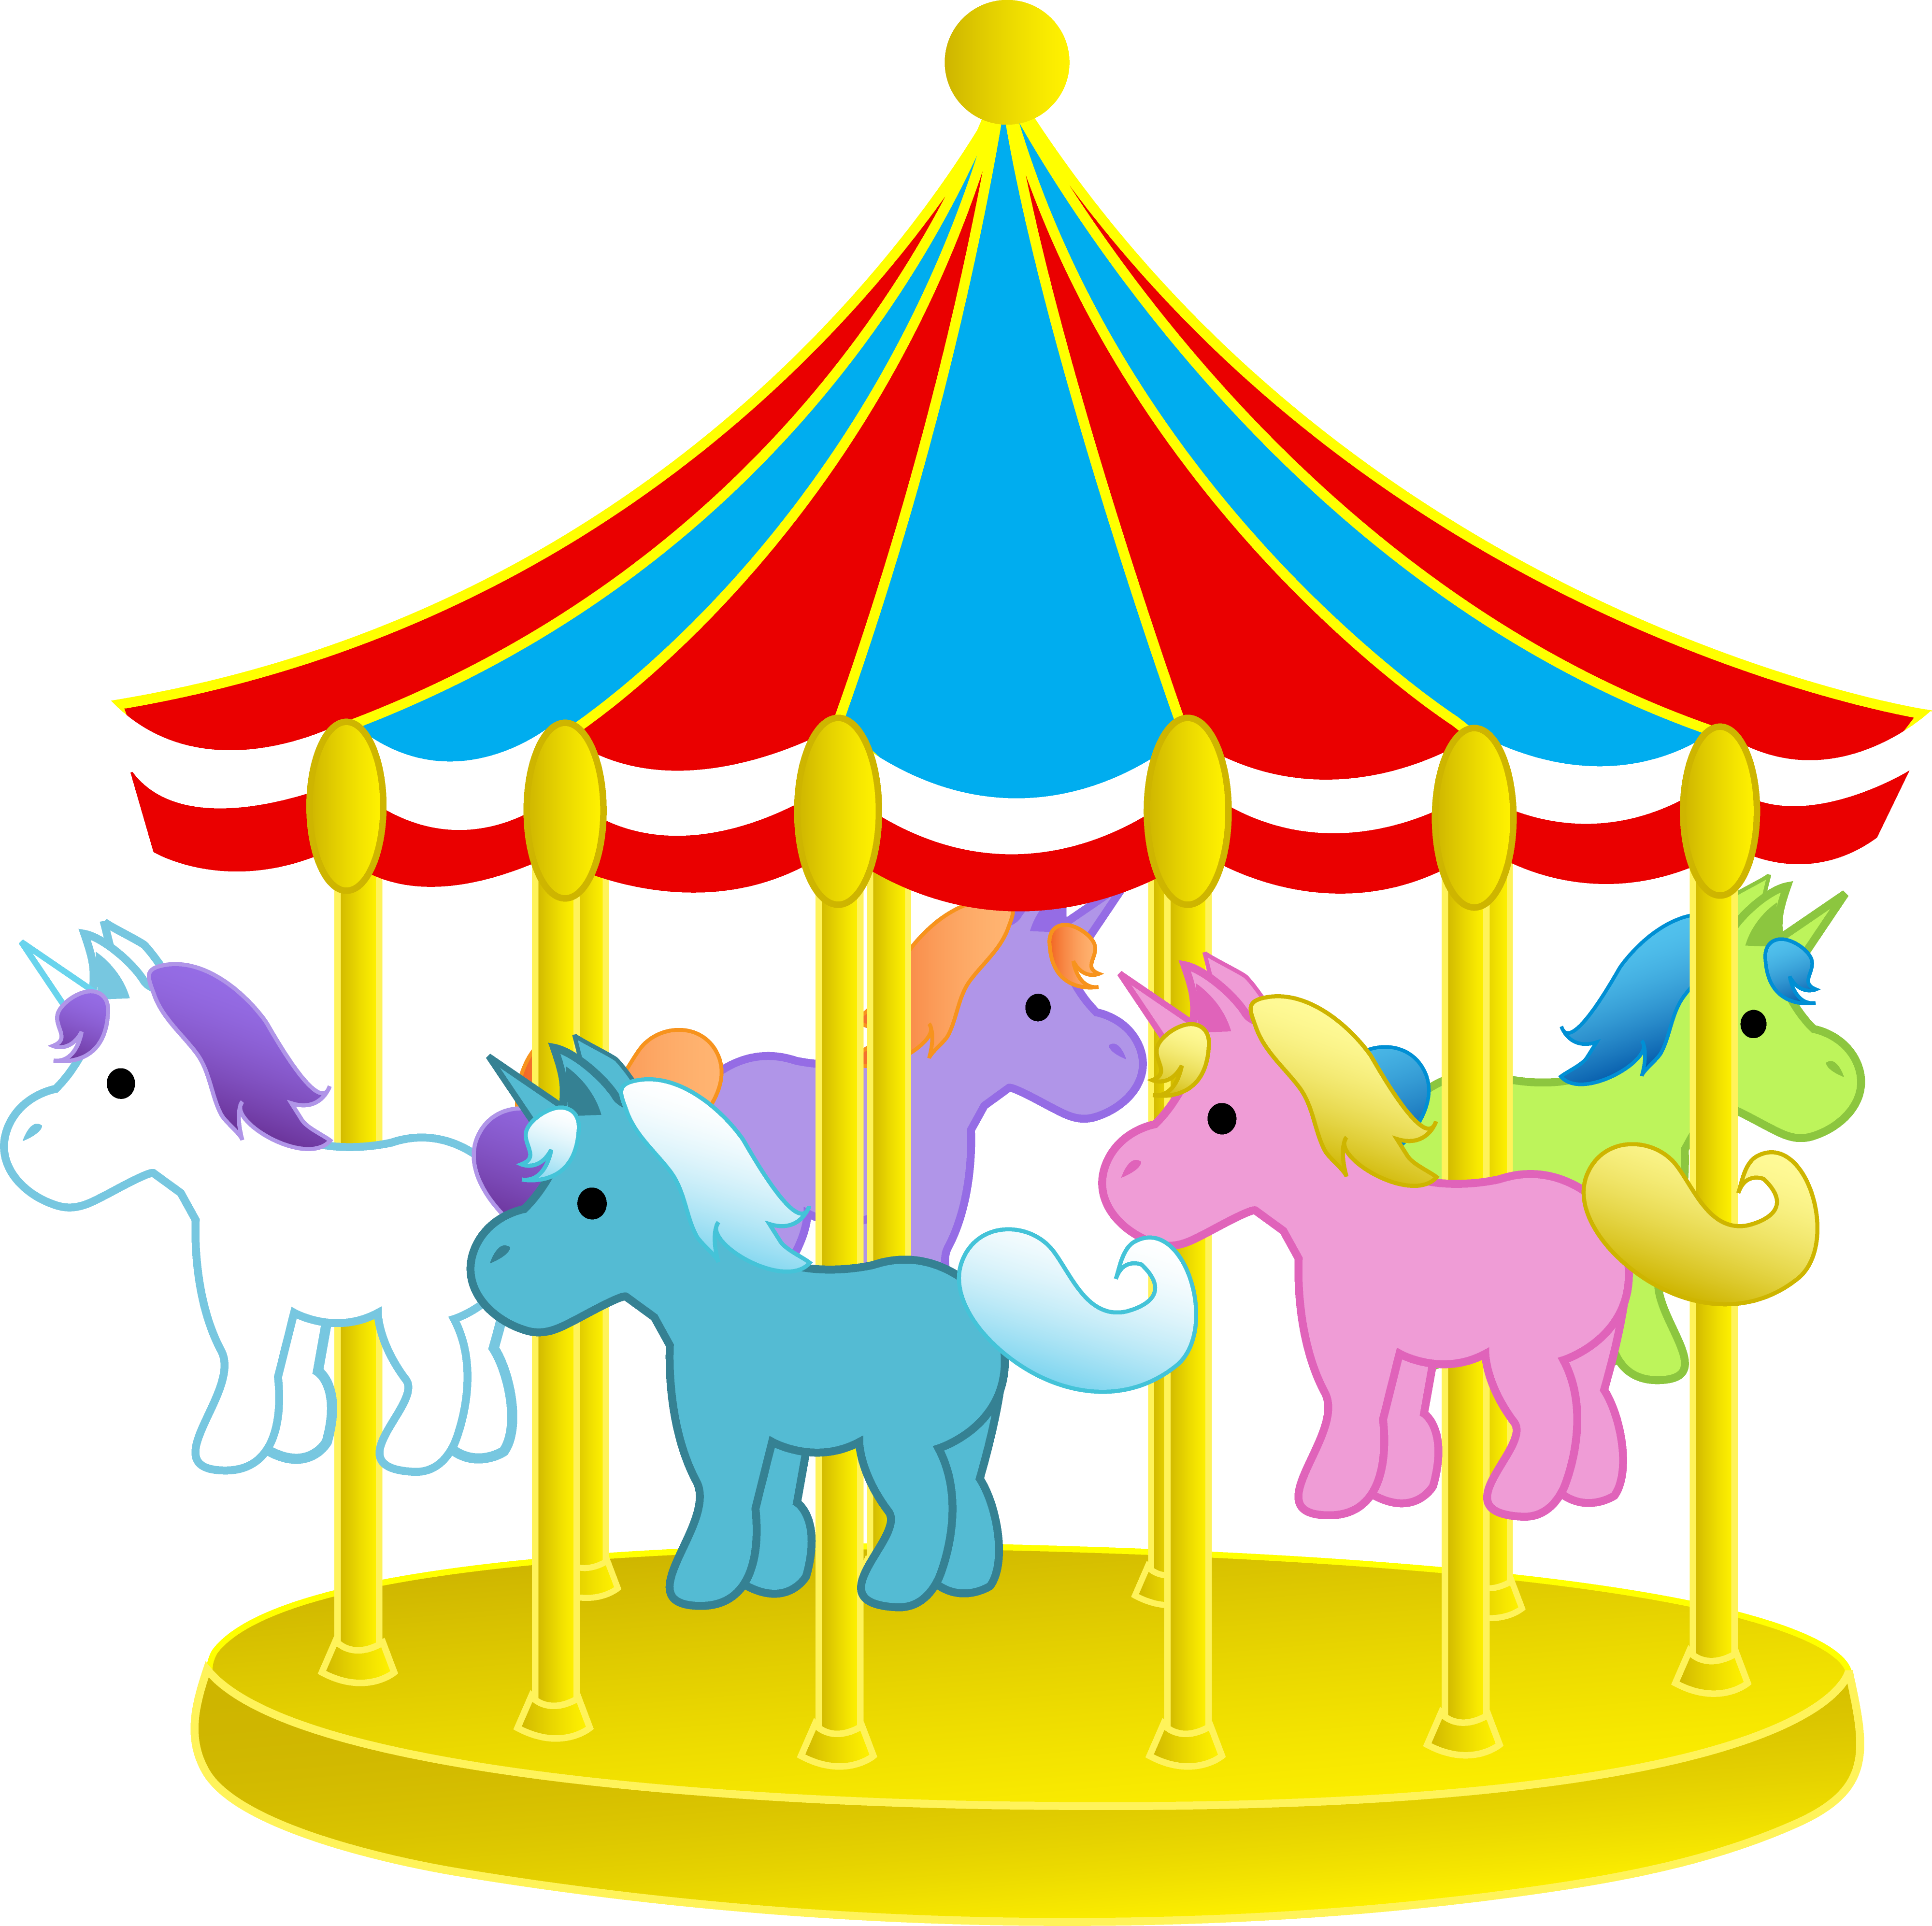 Carousel clipart. Free cliparts download clip